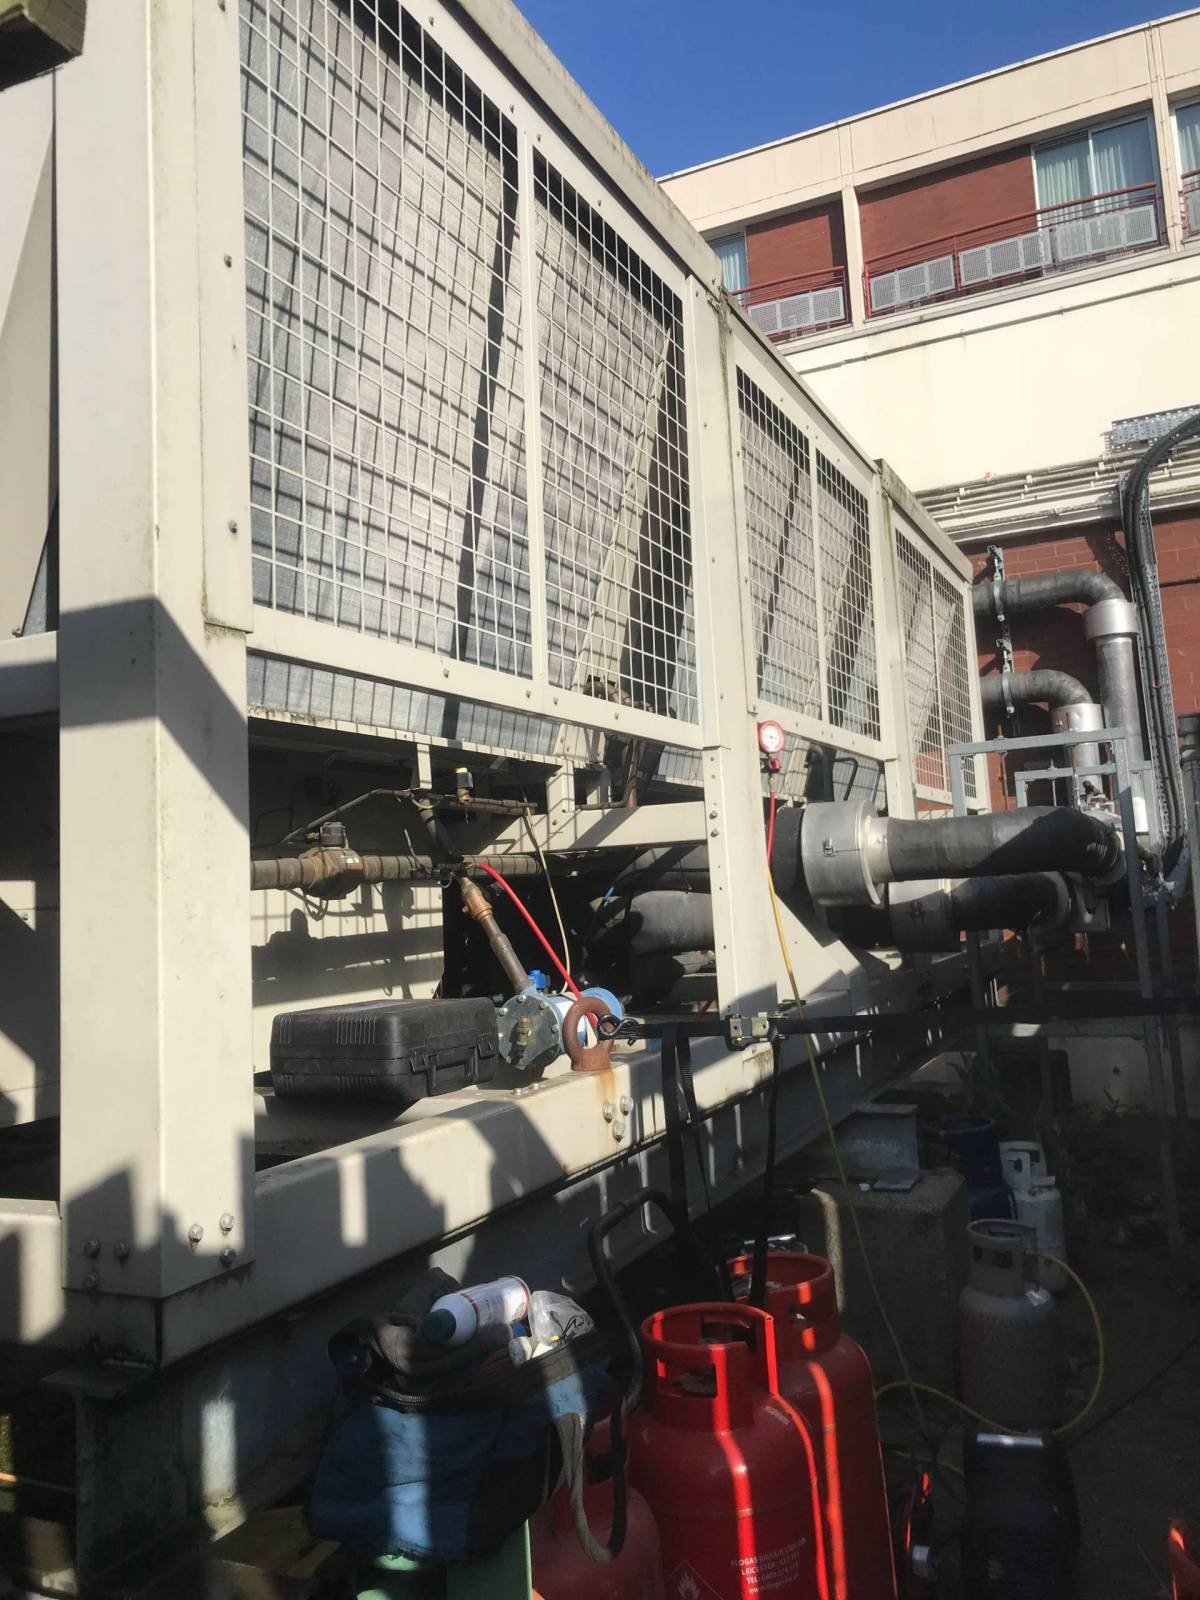 Chilled-water-systems-Breakdown-london-Chilled-water-systems-design-london